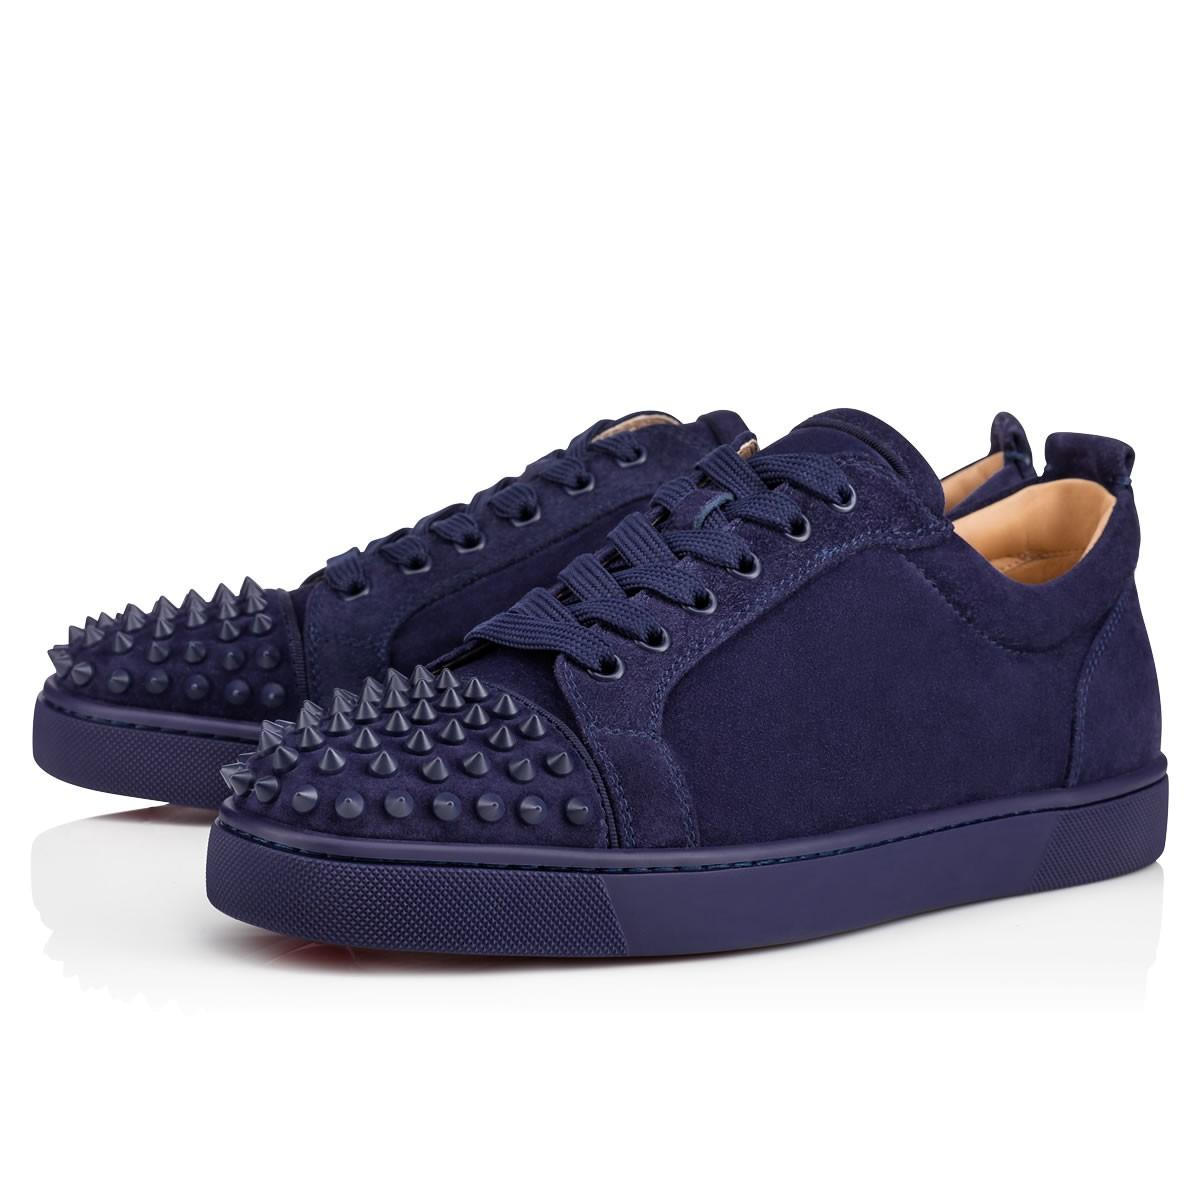 58145954cde7 Christian Louboutin Louis Junior Low-Top Leather Trainers In China Blue China  Blue Mat